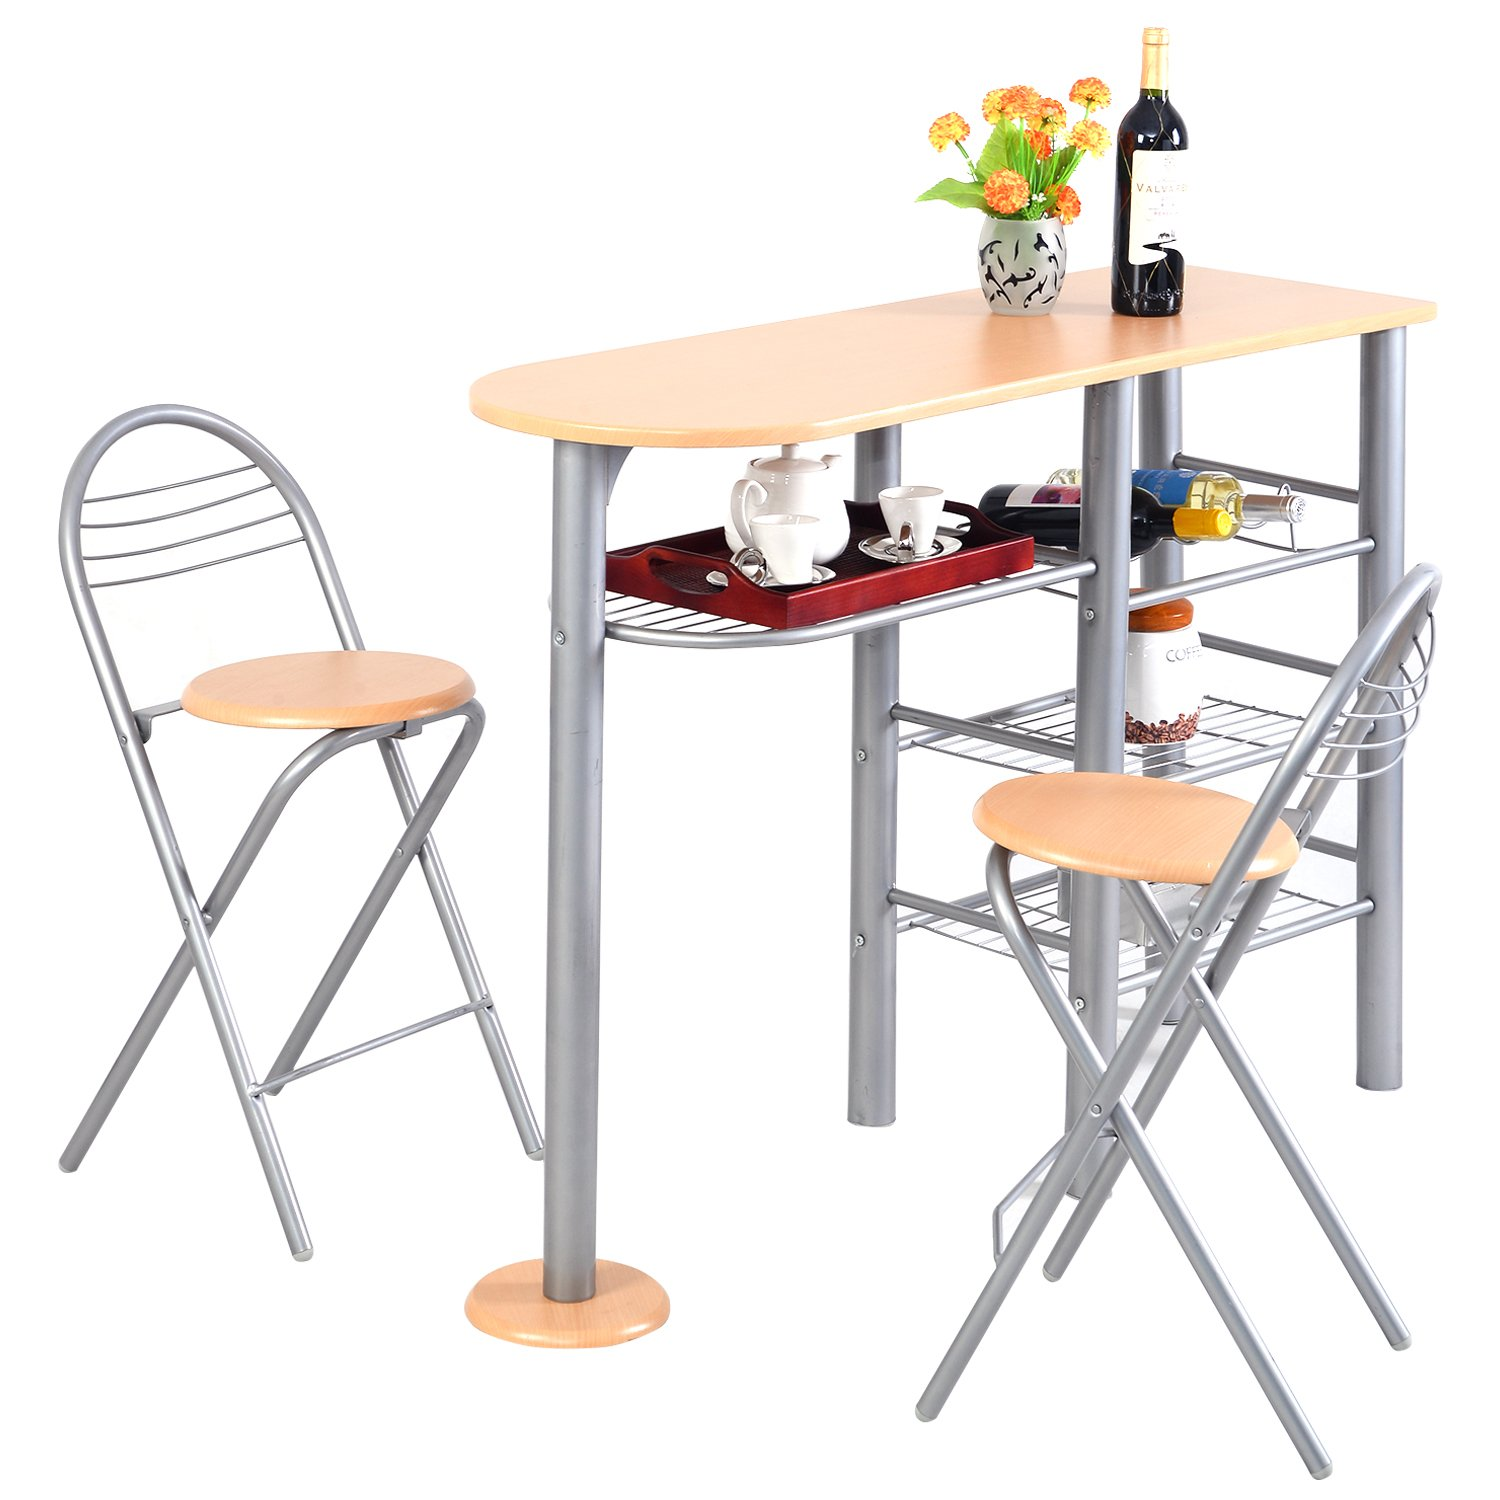 PROSPERLY U.S.Product Pub Dining Set Counter Height 3 Piece Table and Chairs Set Breakfast Kitchen